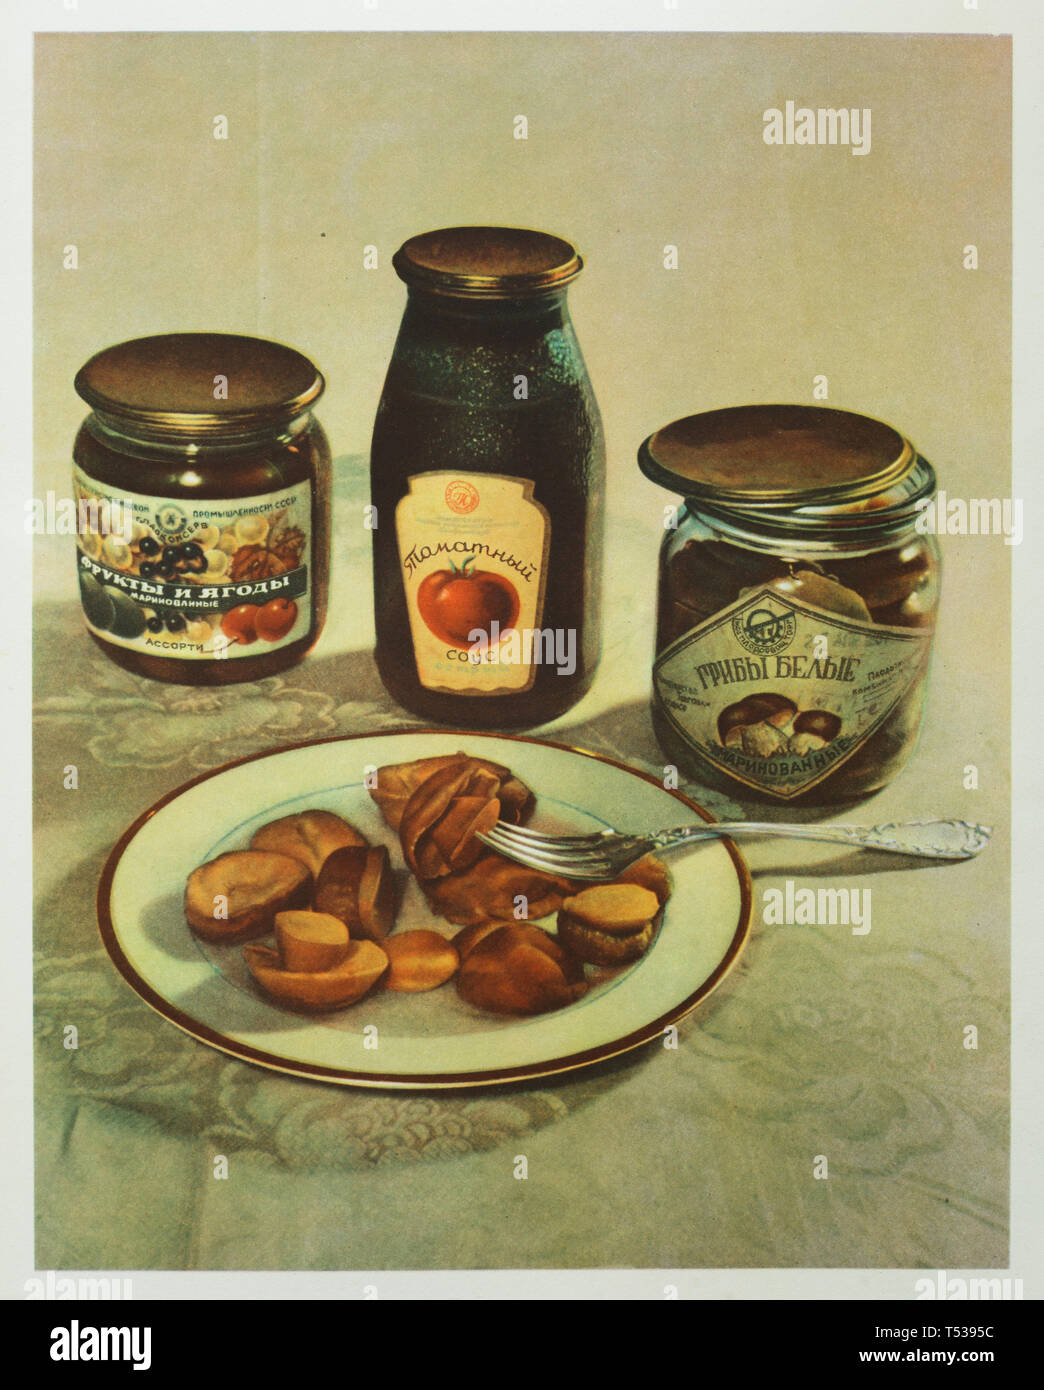 Soviet marinated fruits and berries, tomato sauce and pickled bolete mushrooms depicted (from left to right) in the colour illustration in the Book of Tasty and Healthy Food published in the Soviet Union (1953). Stock Photo